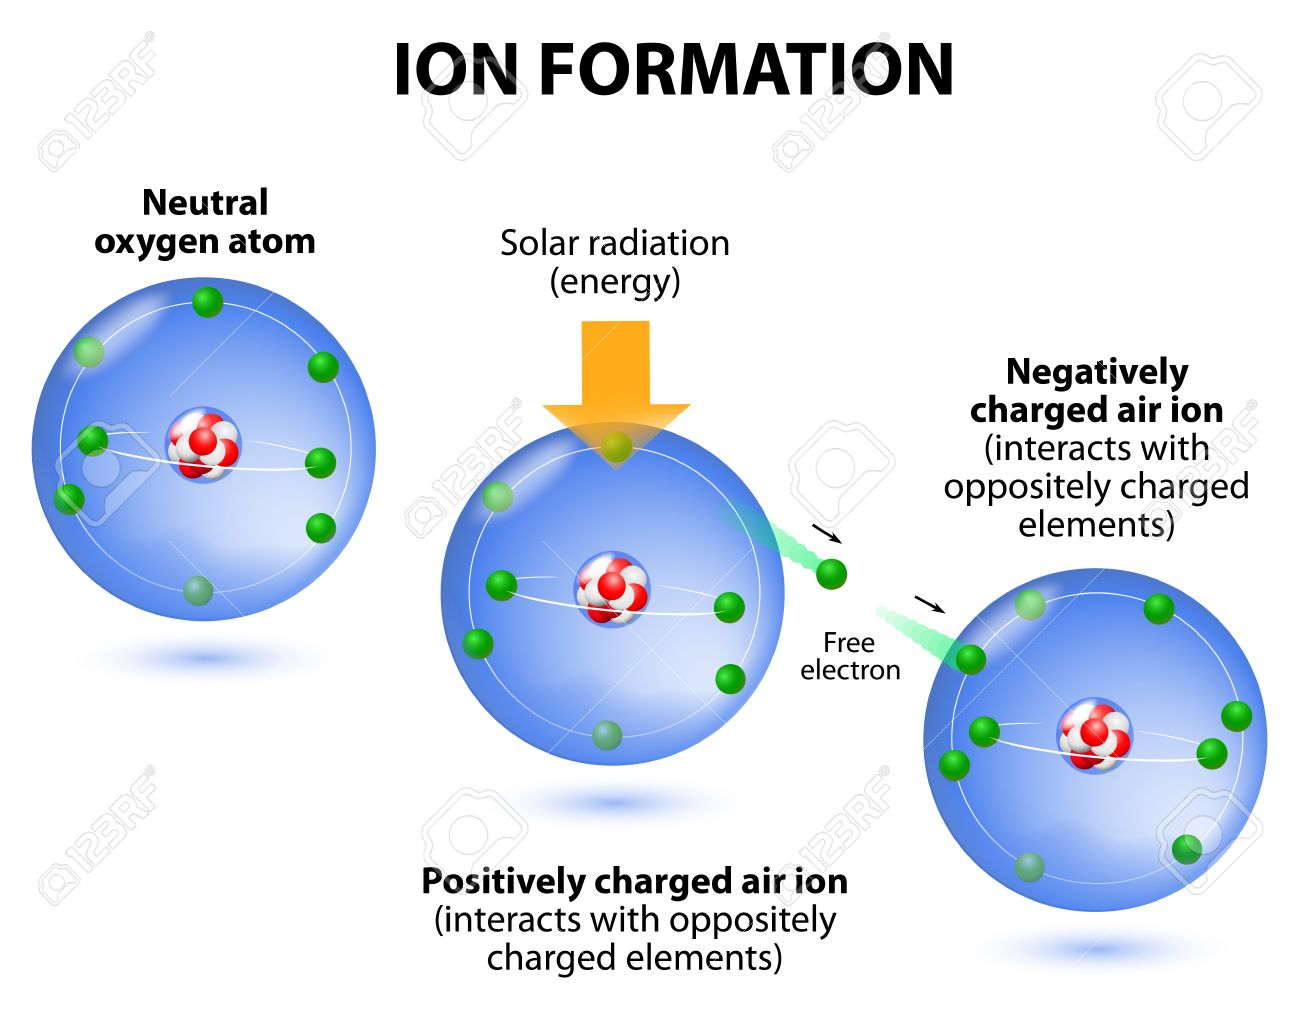 ionization the example oxygen. the process in which a neutral atom or molecule gains or loses electrons and thus acquires a negative or positive electrical charge.  The charged particles in the ionosphere are created by radiation from the sun. Air ions ar Stock Vector - 25252187